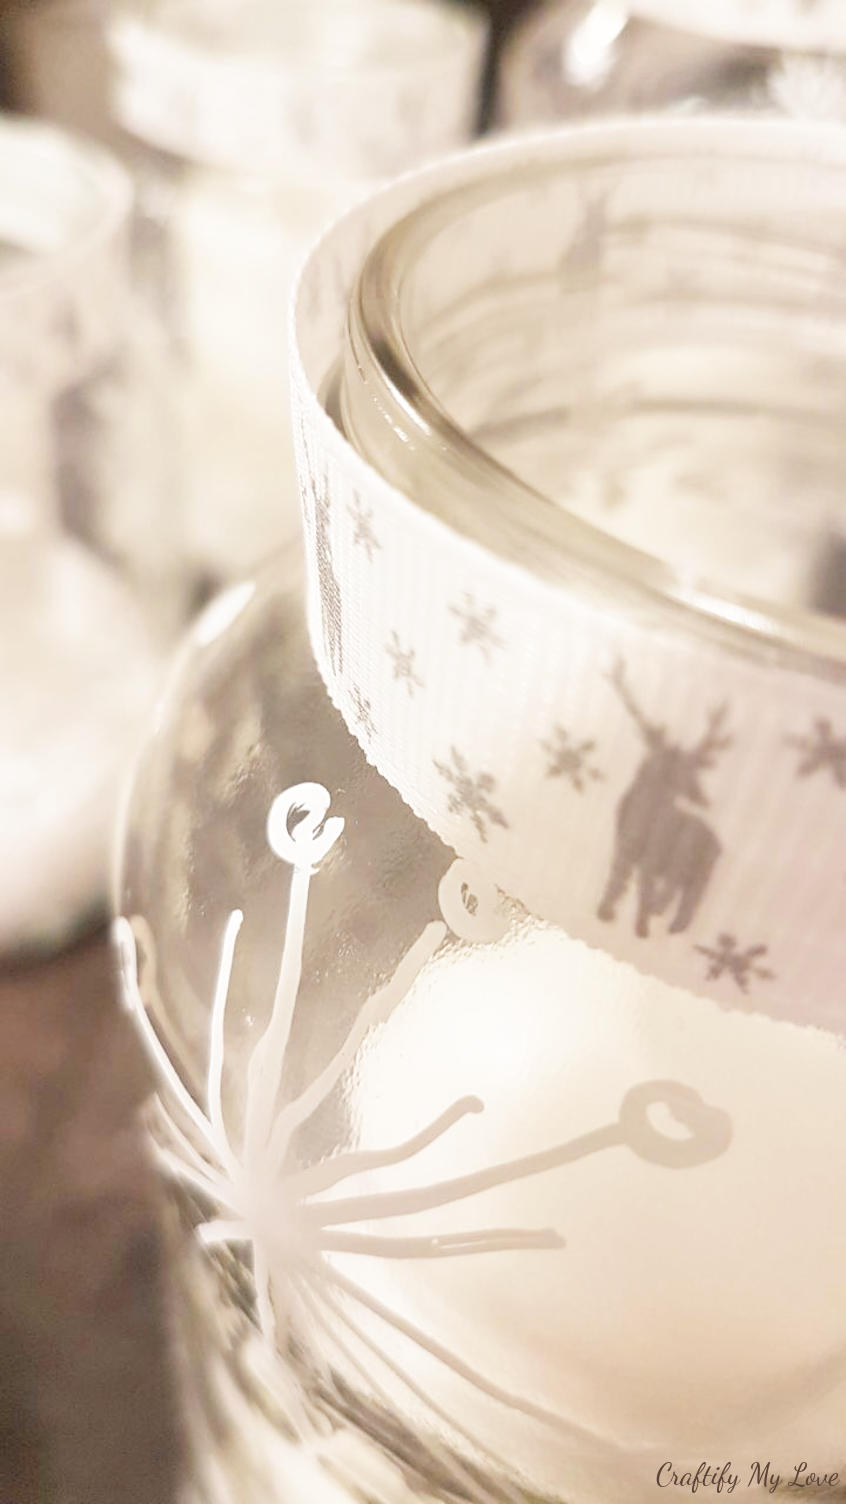 Upcycling jam jars into Christmas candle holders